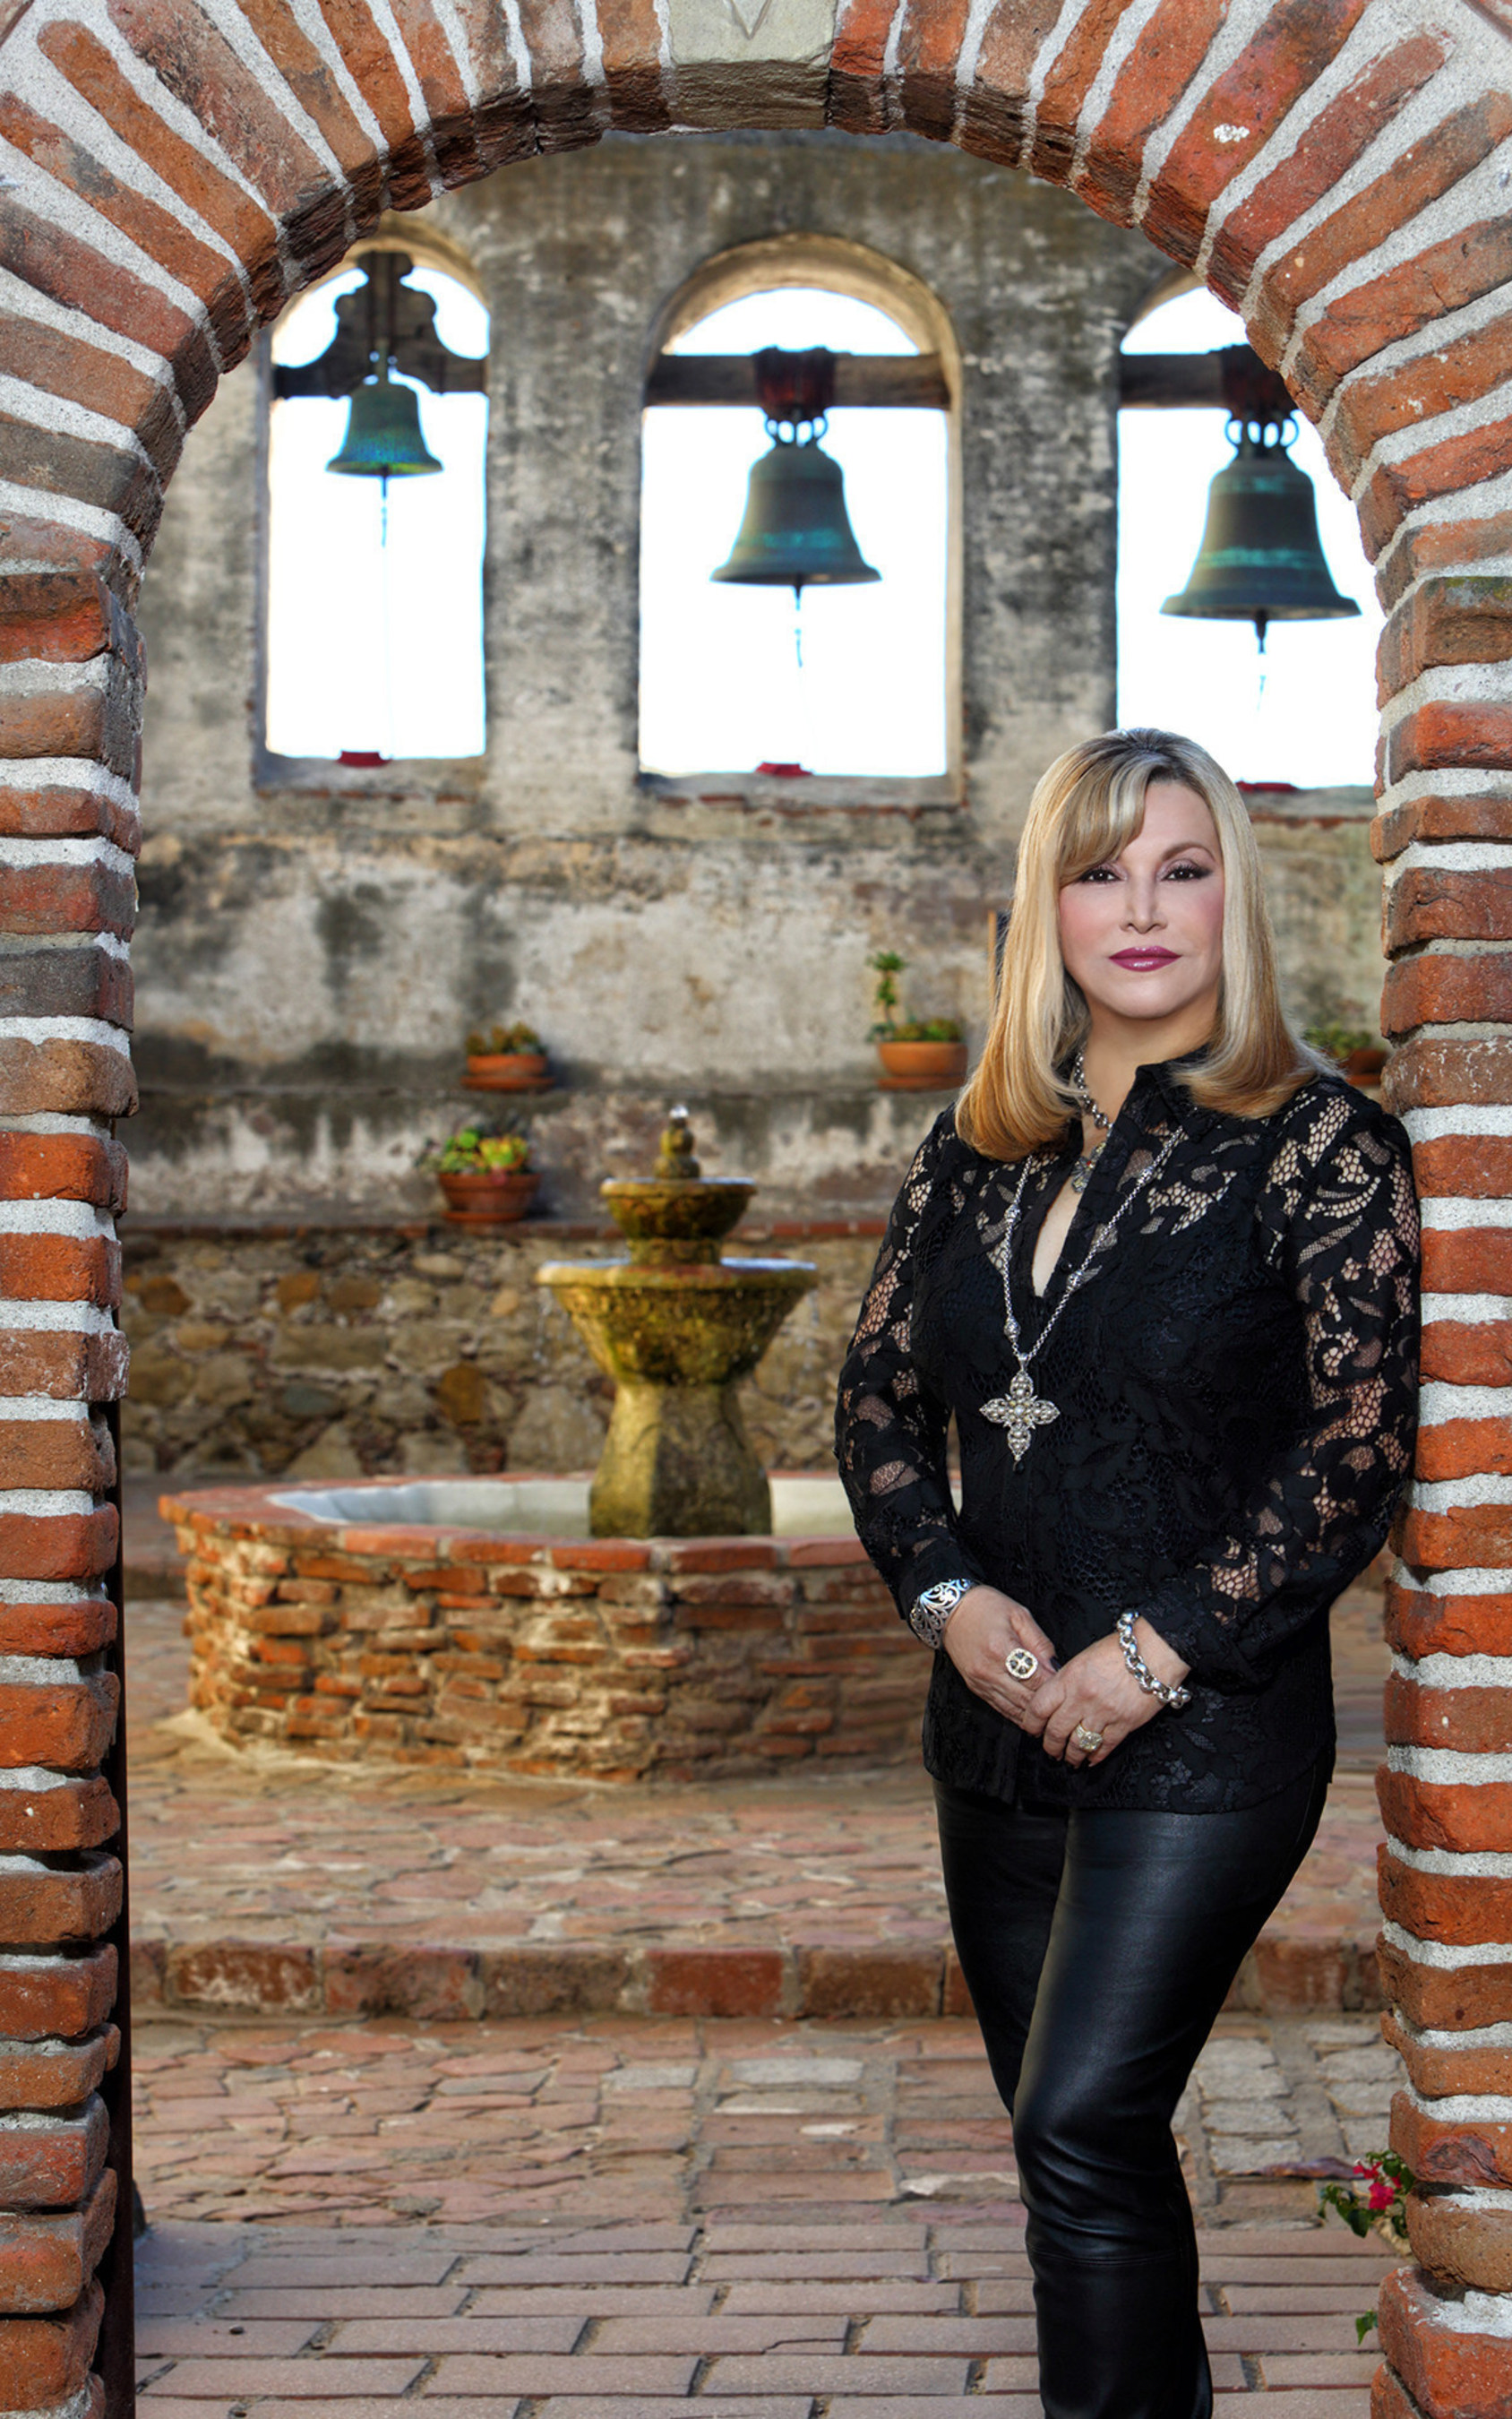 Cecilia Velastegui award-winning Latina author of historical thrillers and bilingual children's fables celebrates a year of book awards.